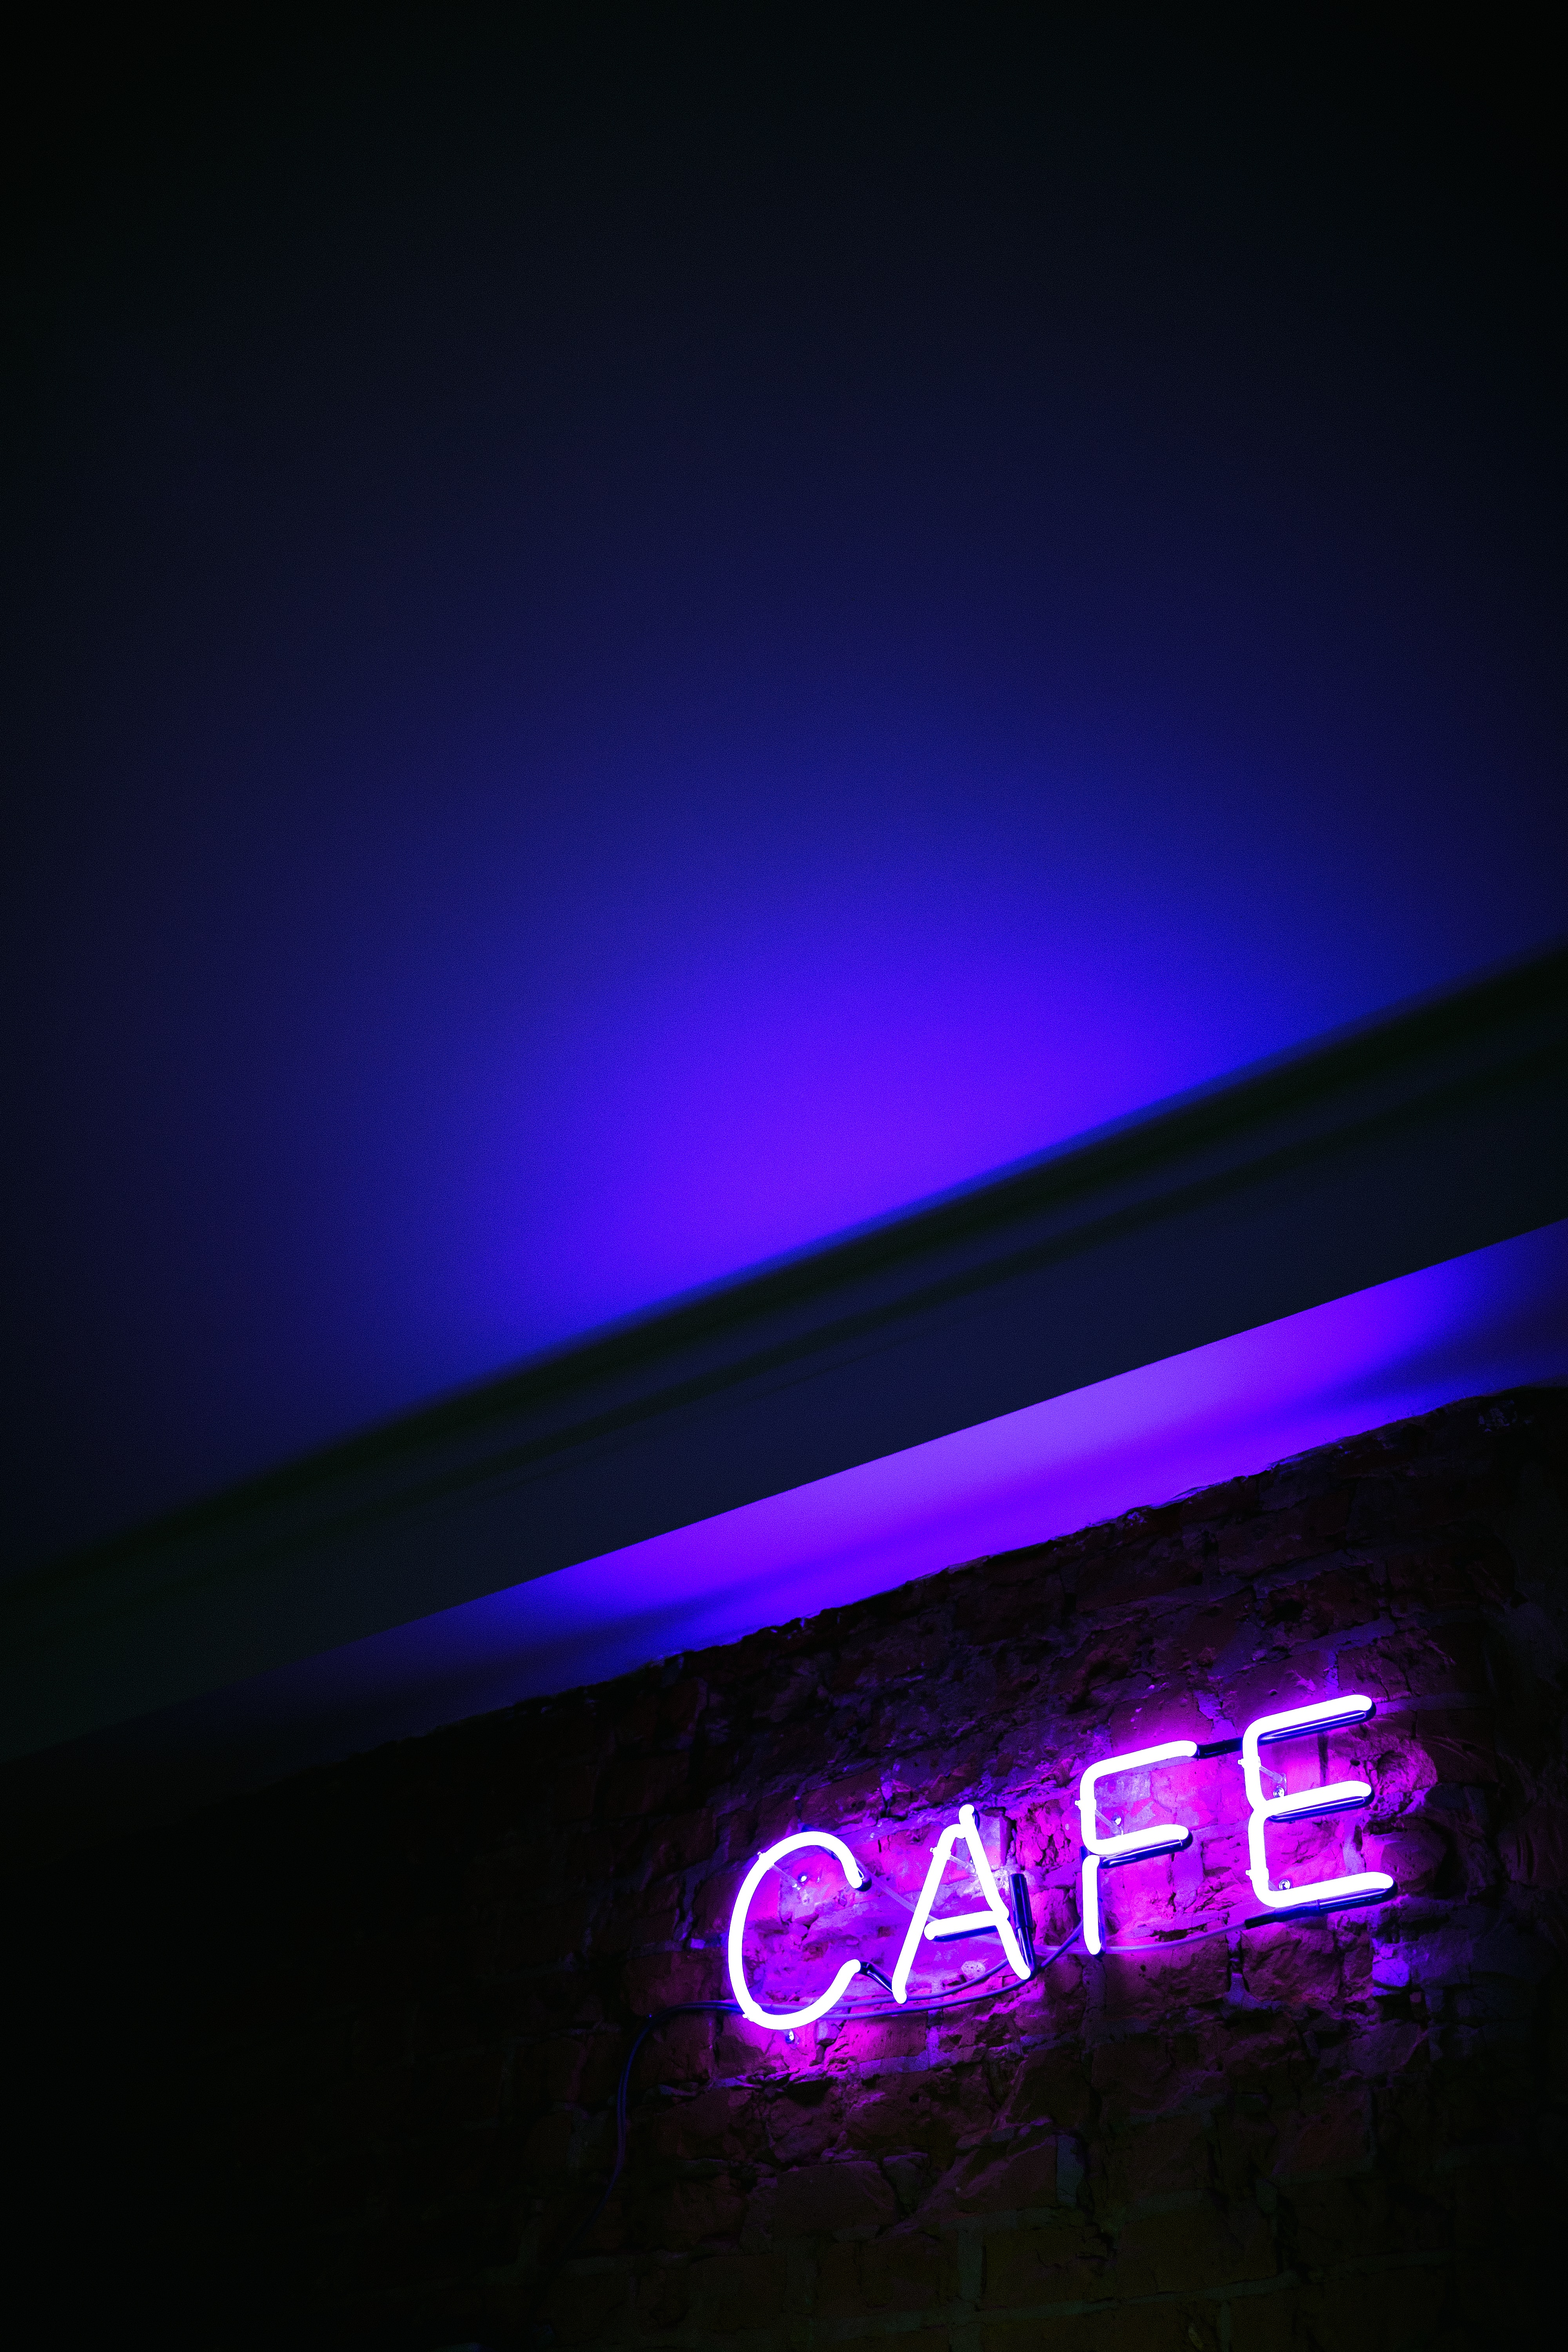 CAFE neon signage mounted on wall